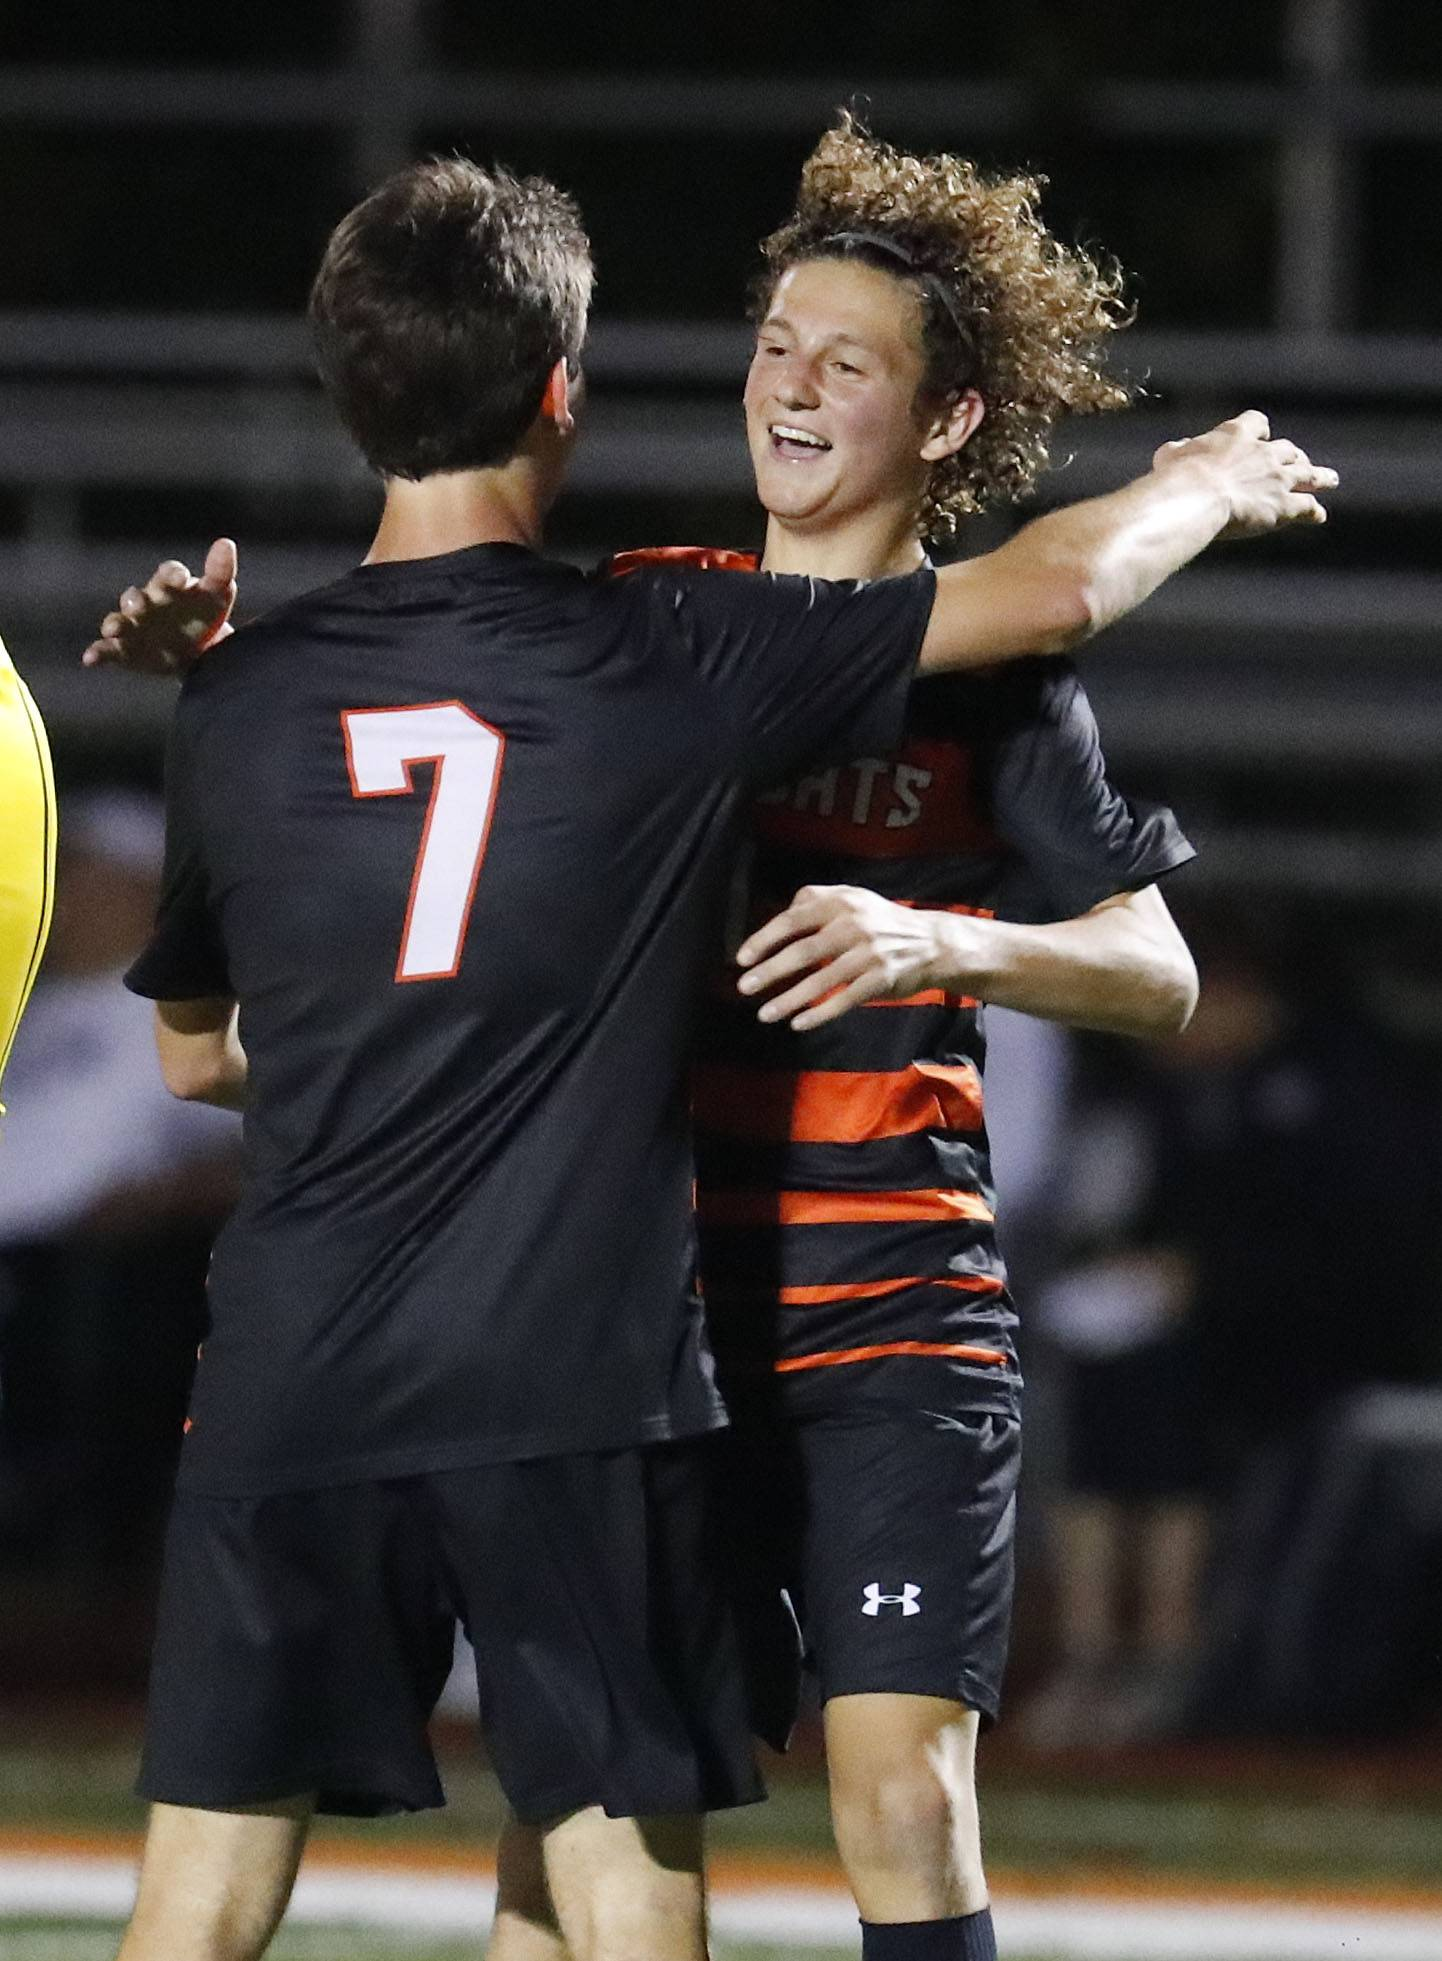 Libertyville's Mickey Reilly, right, gets a hug from Tanner Kelly after scoring during their game against Lake Forest Academy Tuesday night in Libertyville.